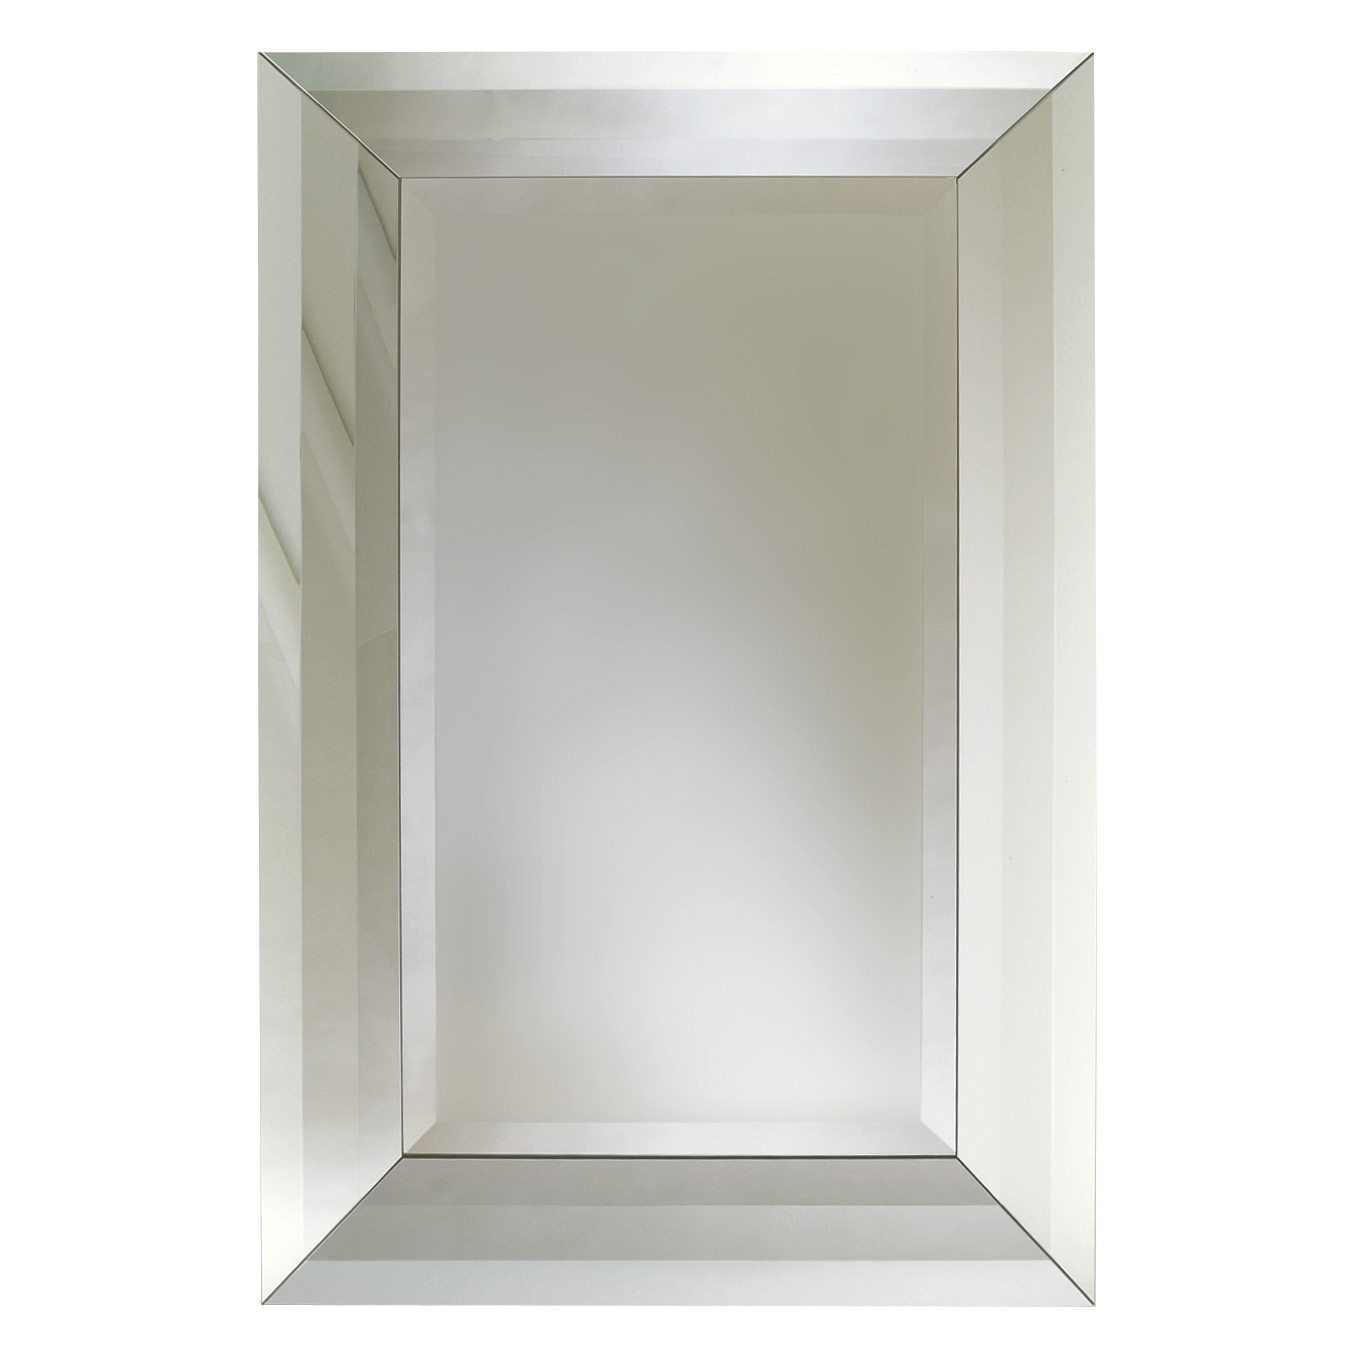 Global Views Adas Beveled Edge Mirror Large Regarding Chamfered Edge Mirror (Image 12 of 15)